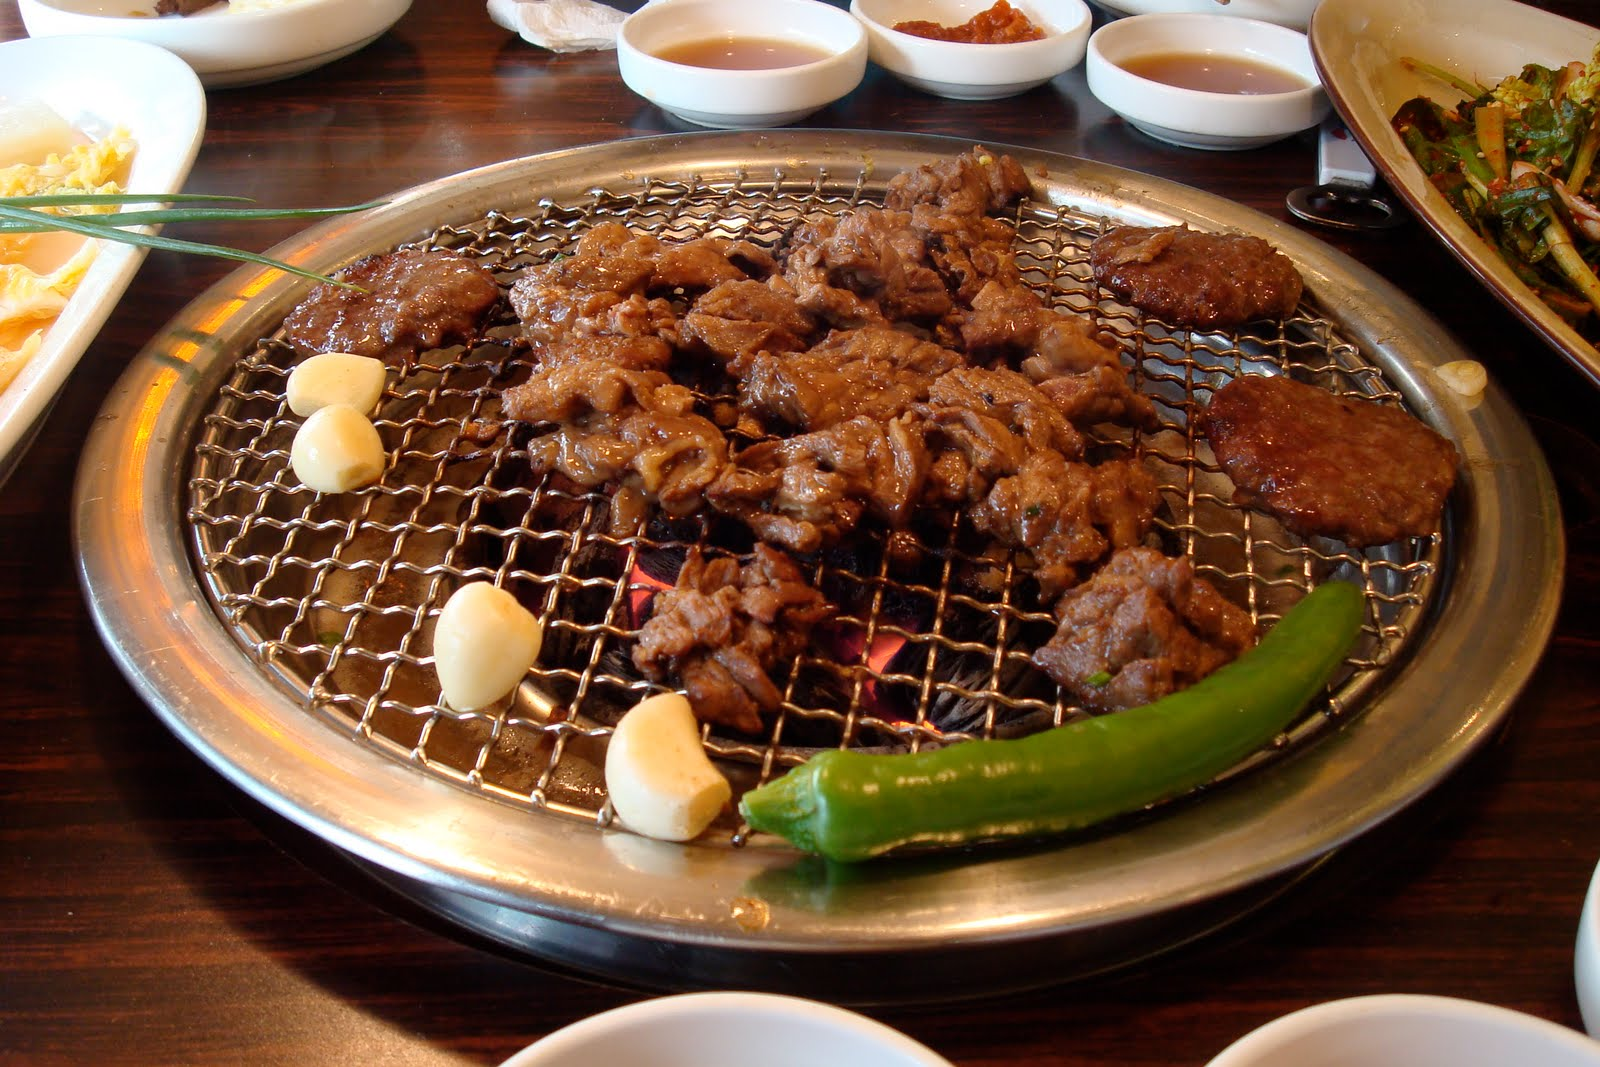 Korean food koreabridge for Cuisine korean